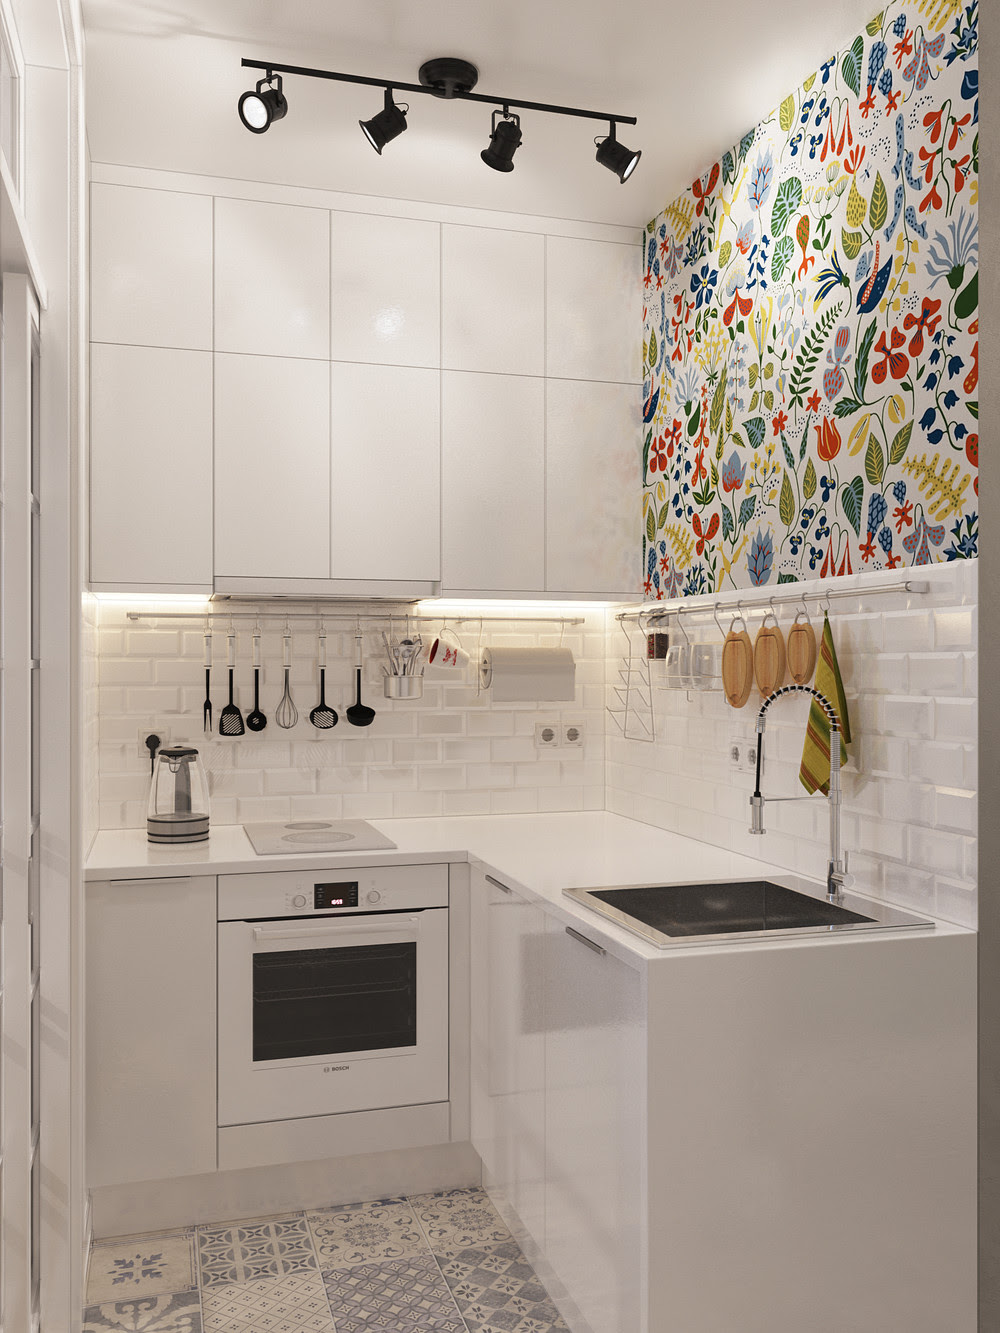 innovative kitchen designs for small spaces